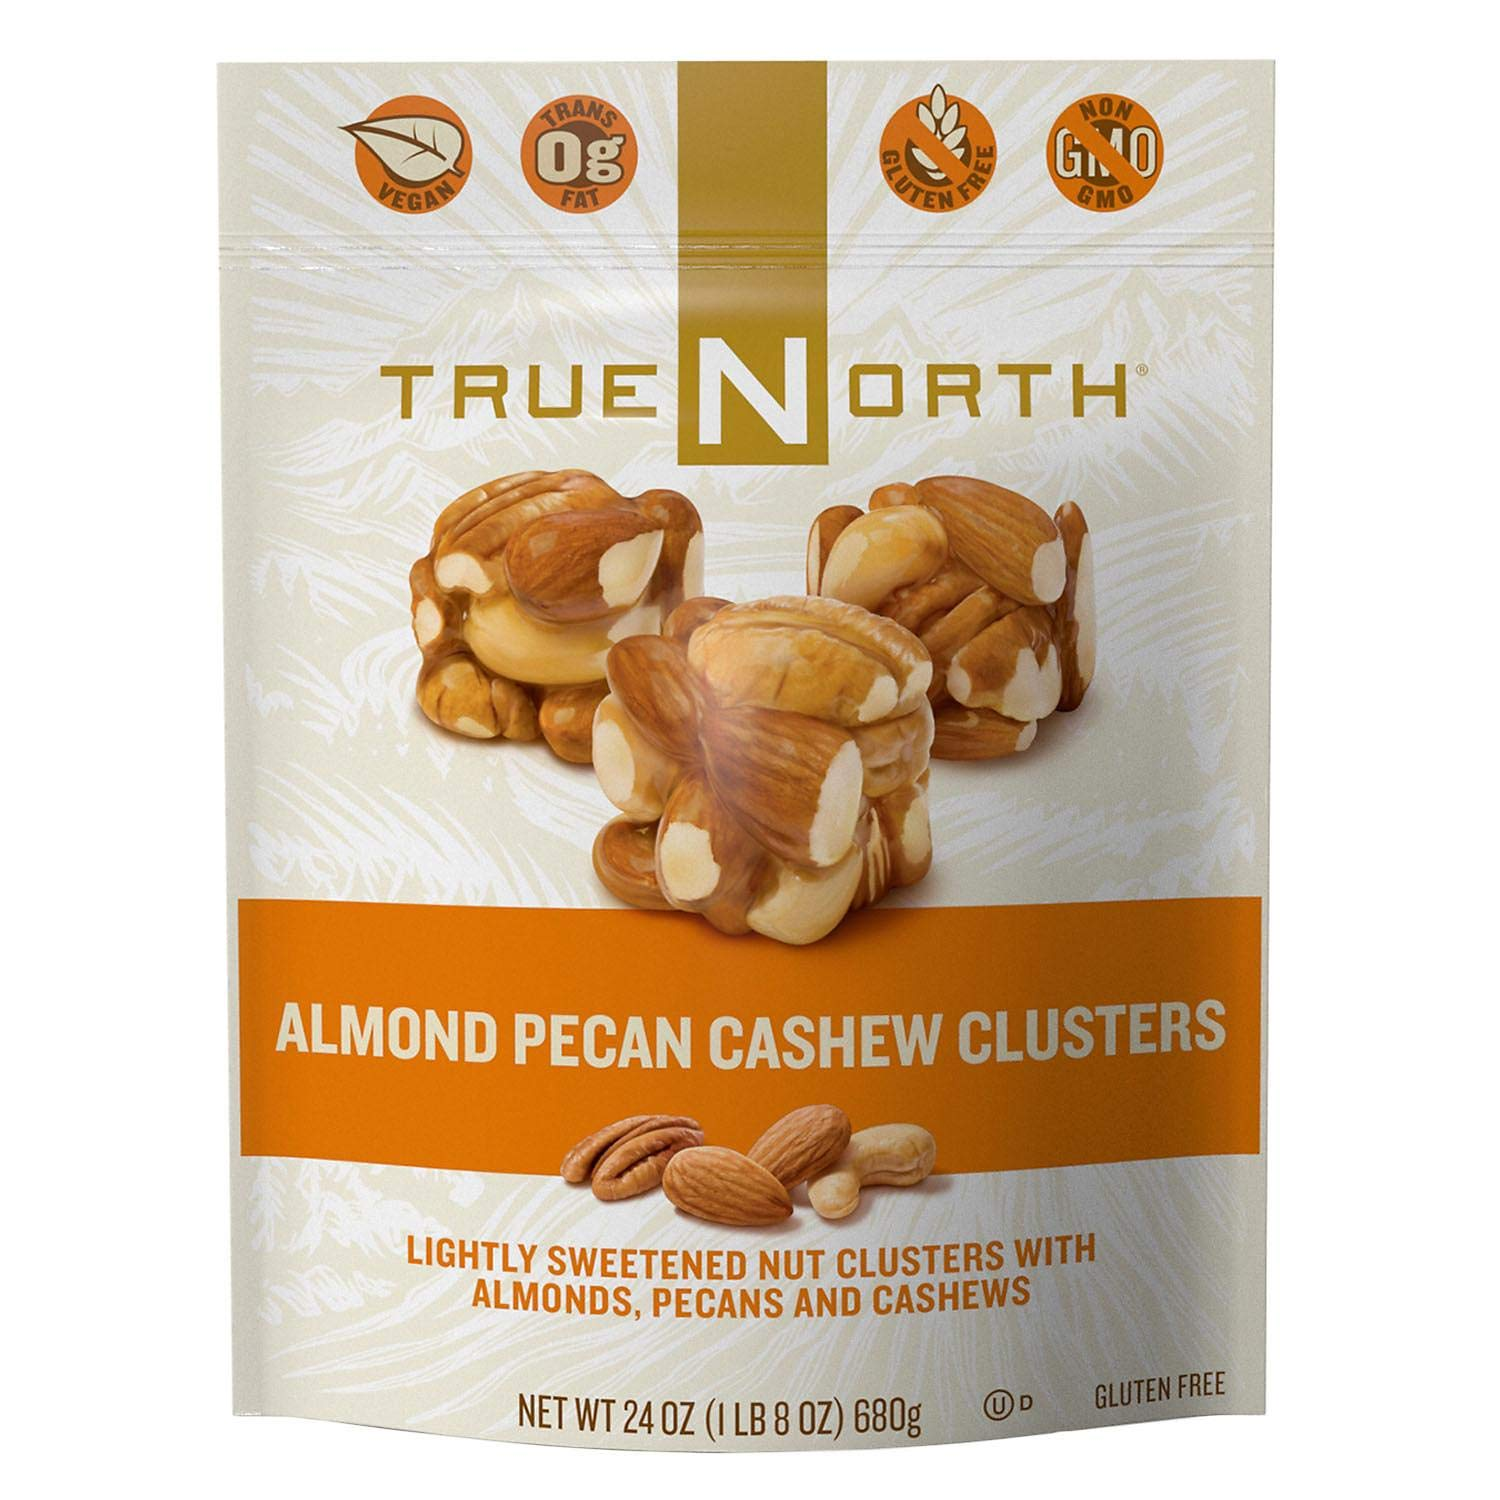 True North 100% Almond Pecan Cashew Cluster 24 oz (Pack of 3) by TRUE NORTH